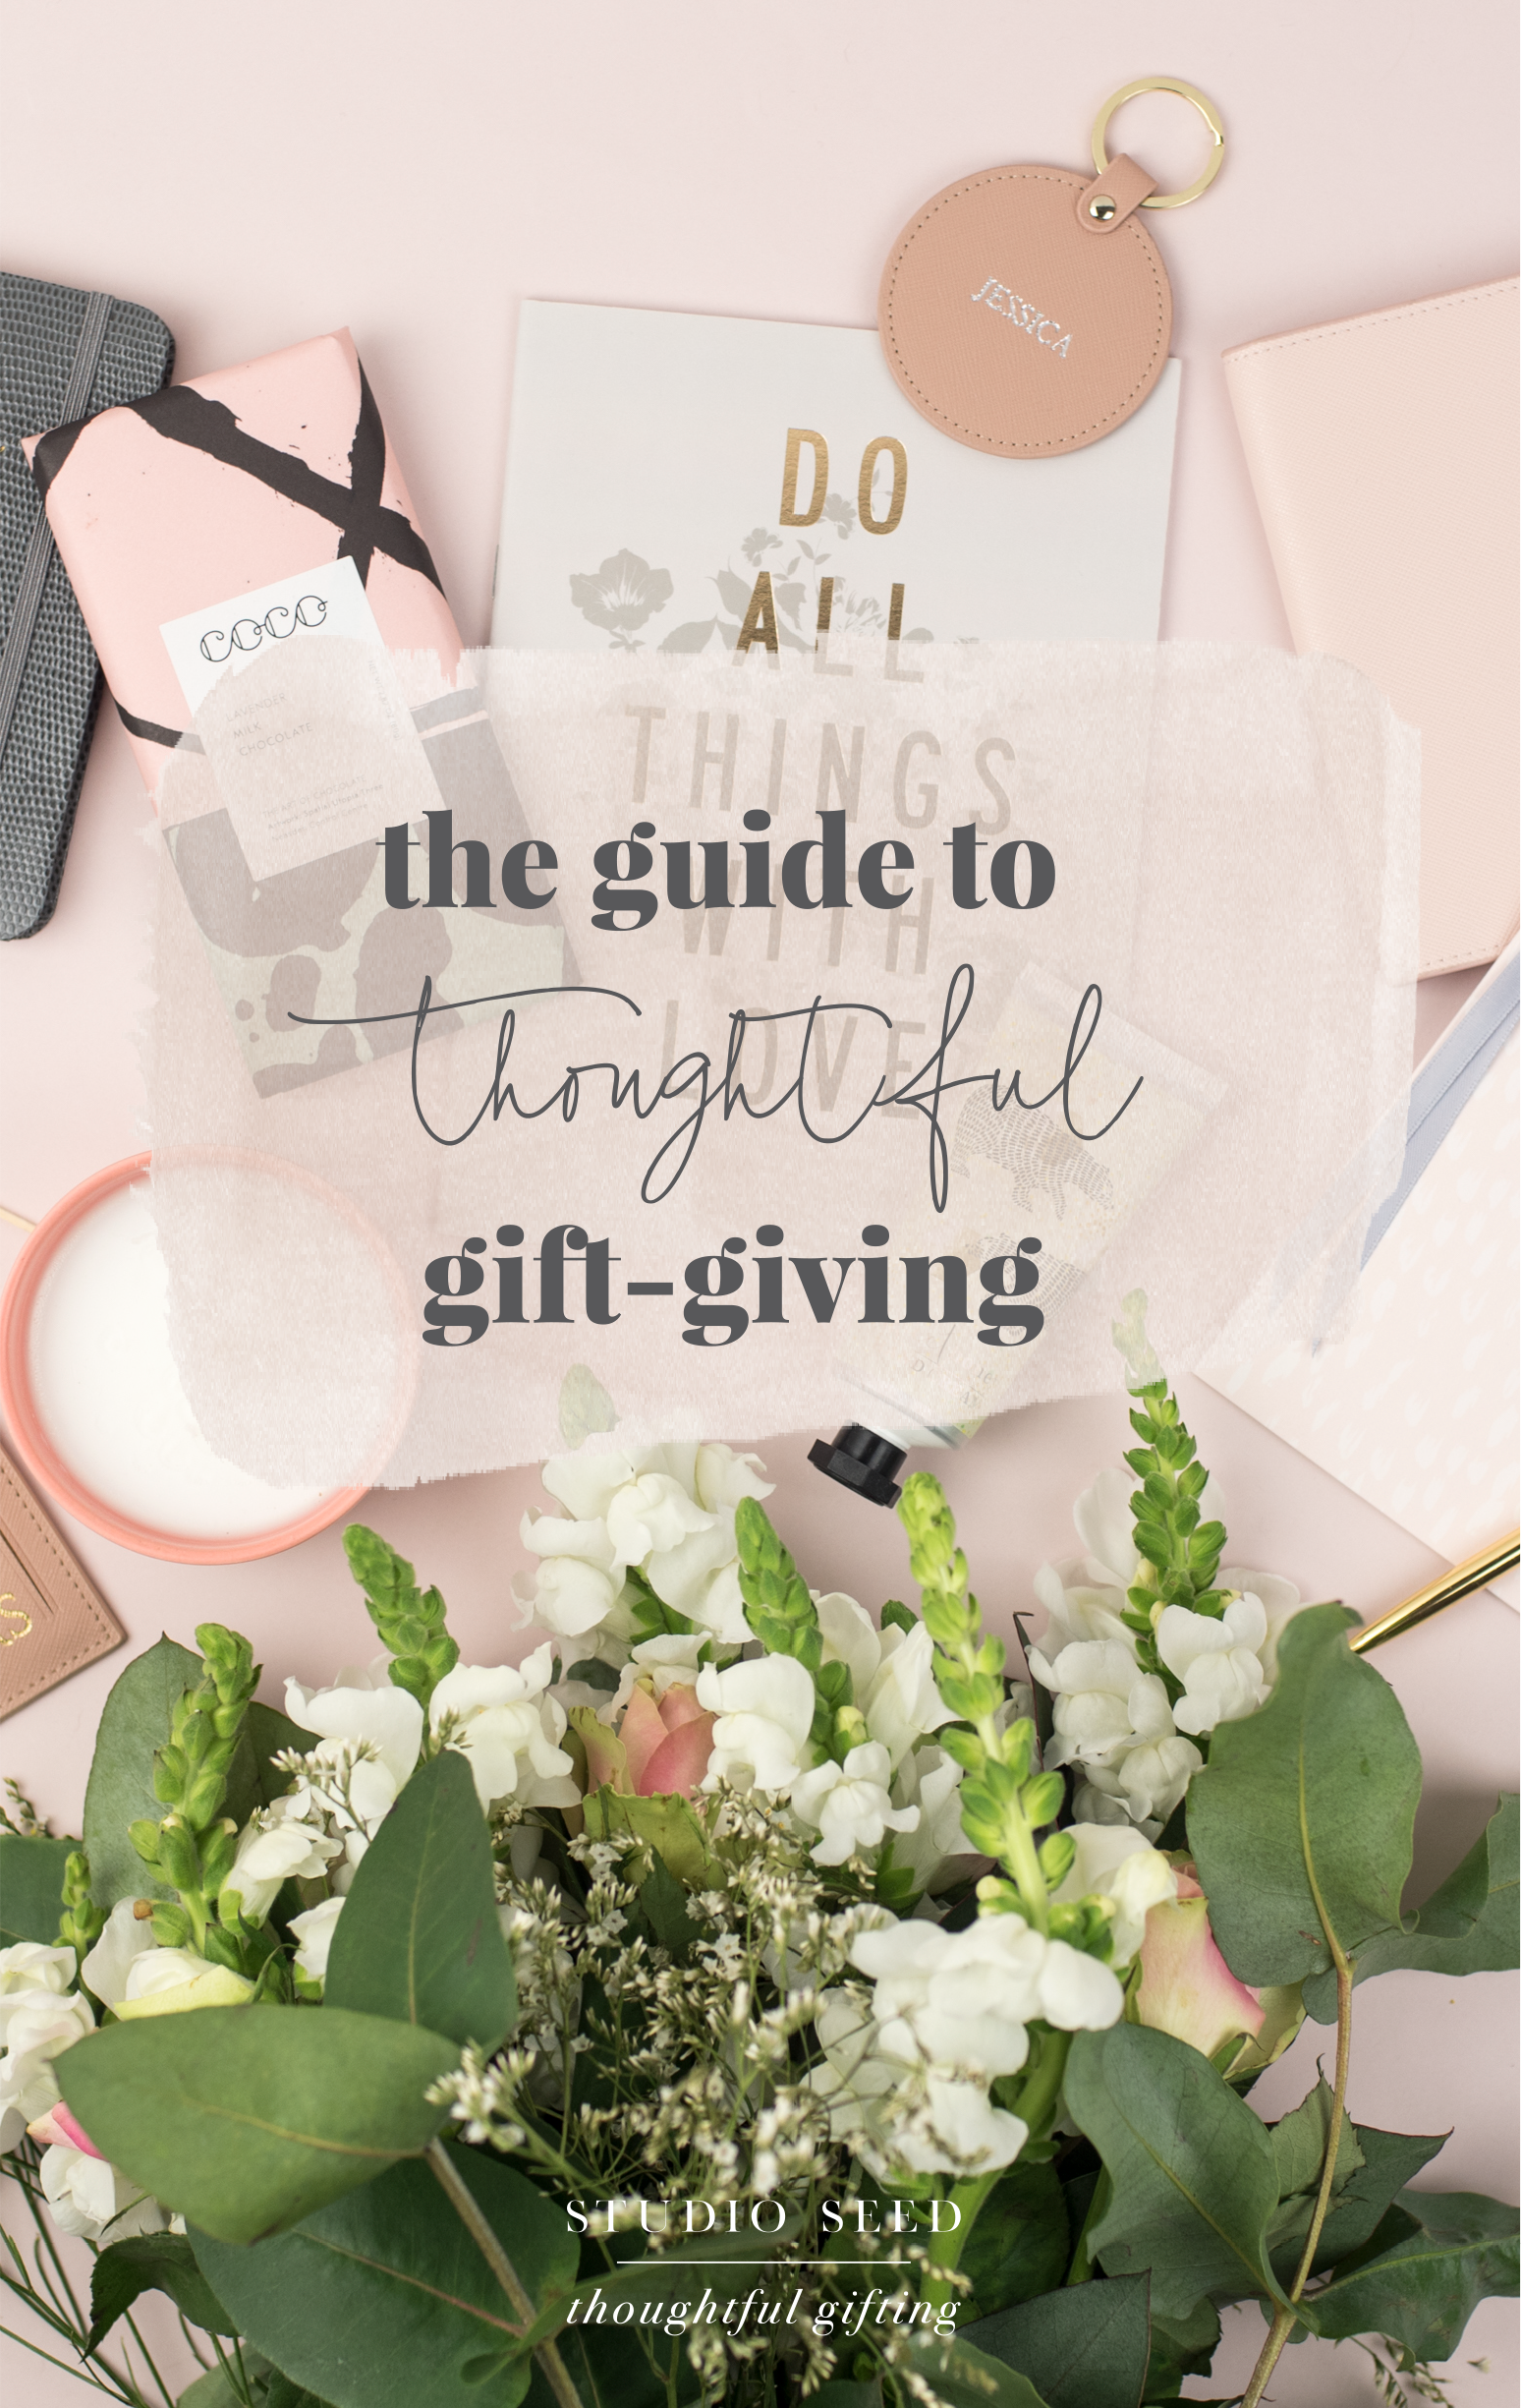 The Studio Seed Guide to Thoughtful Gifting